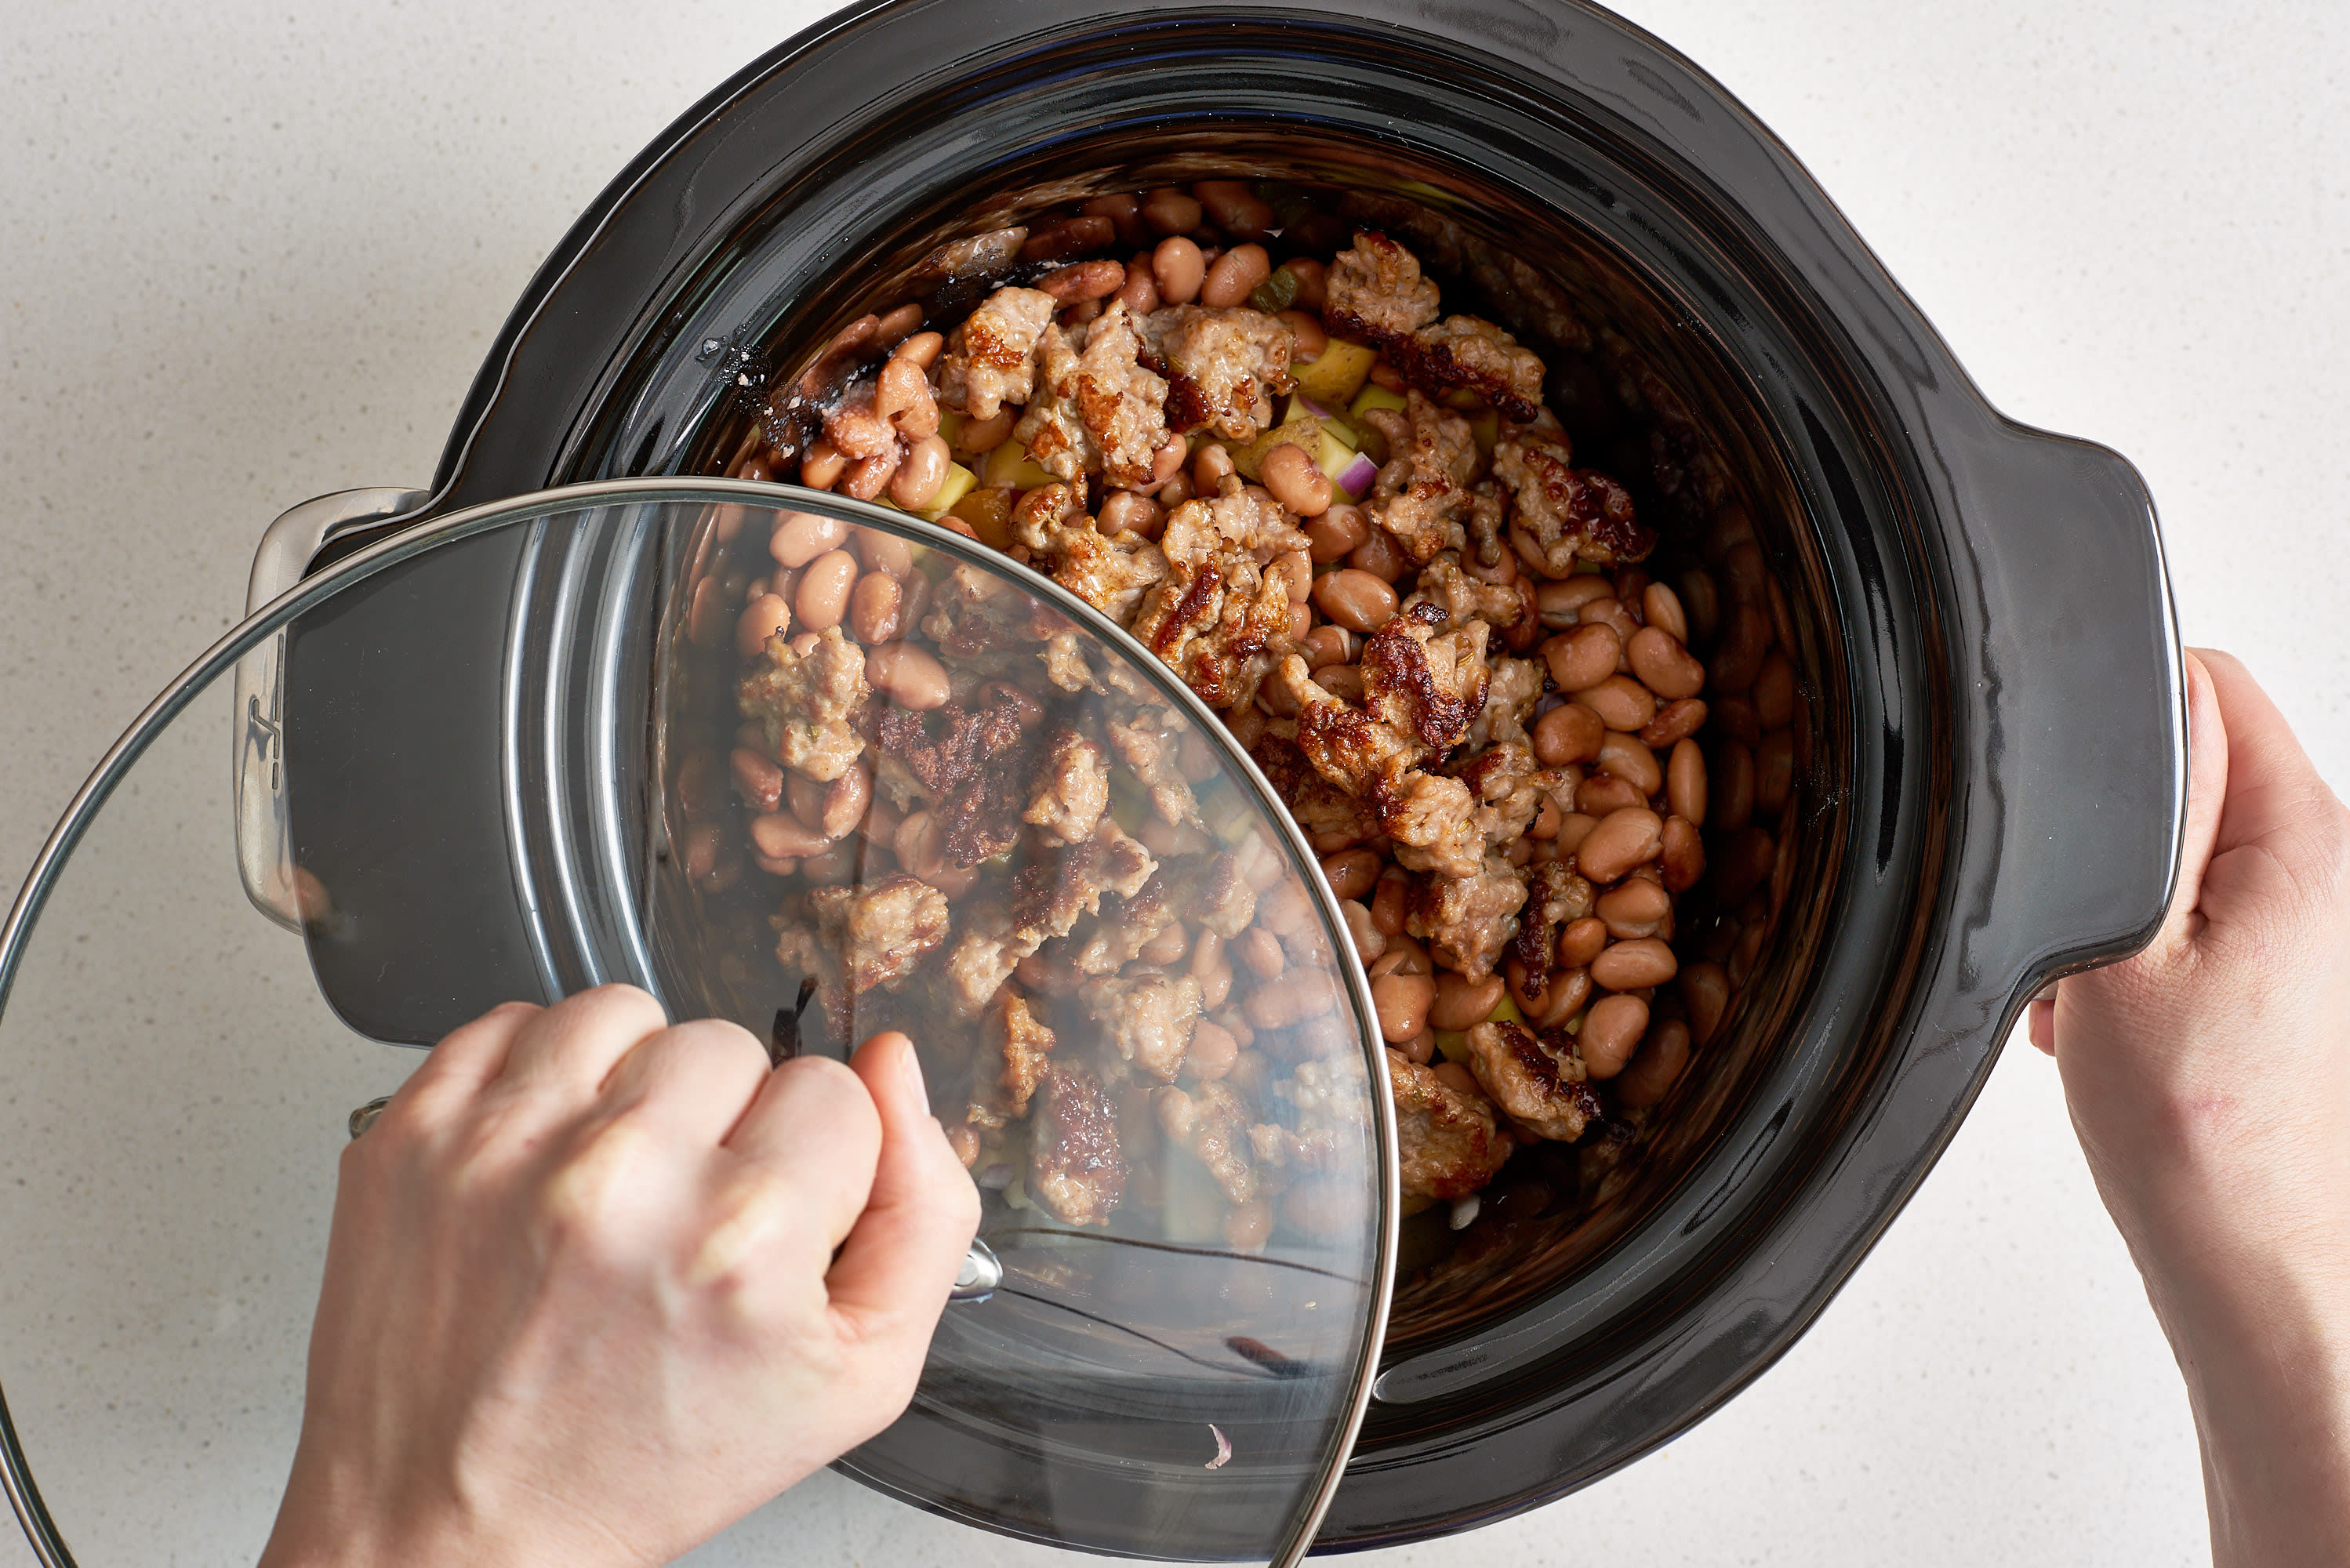 How To Make Slow Cooker Breakfast Burrito Bowls: gallery image 5